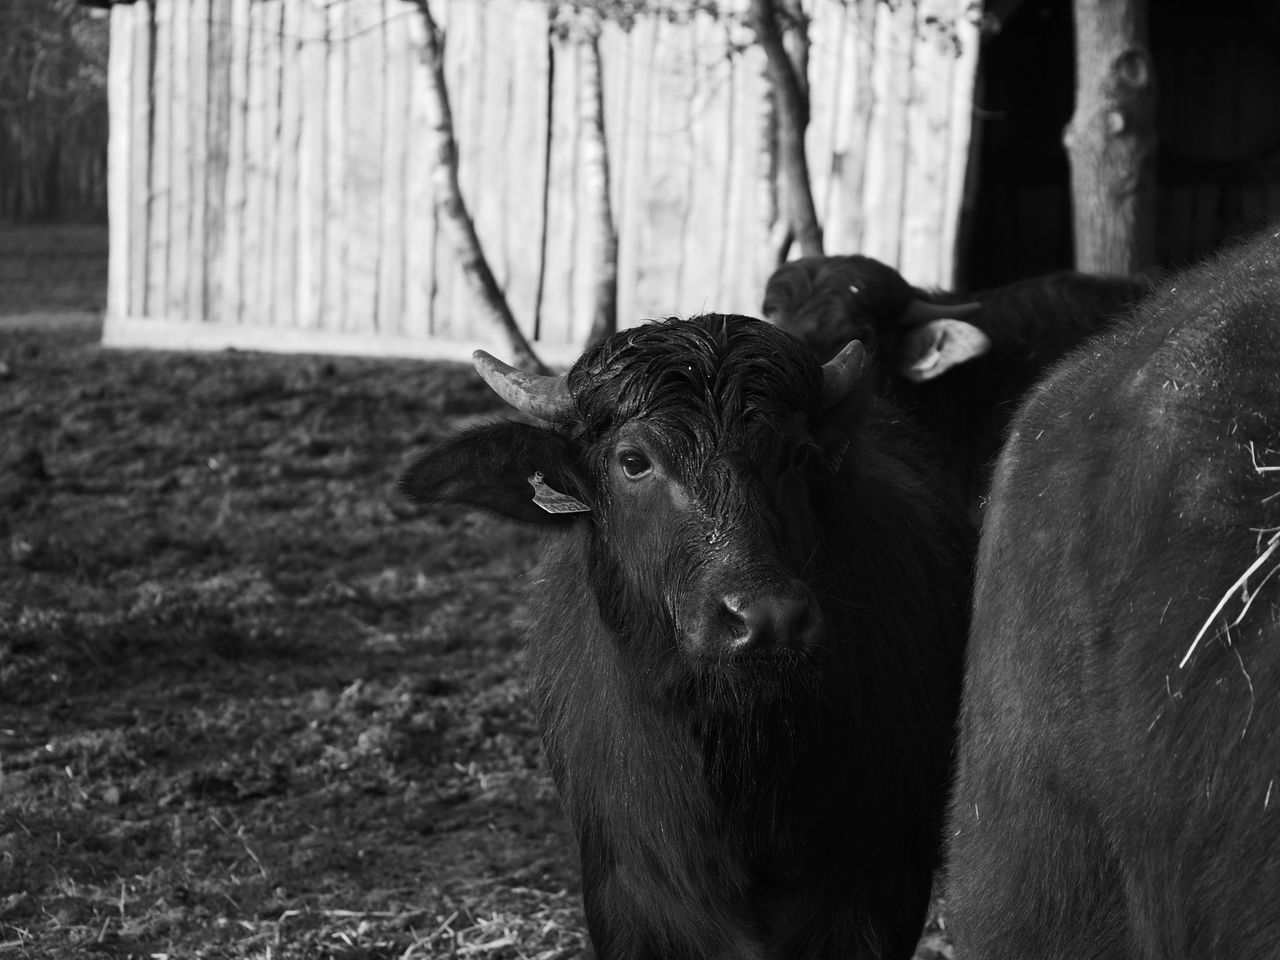 Animal Head  Animal Themes Blackandwhite Domestic Animals Looking At Camera Mammal Nature No People One Animal Outdoors Portrait Schwarzweiß Wasserbüffel Water Buffalo